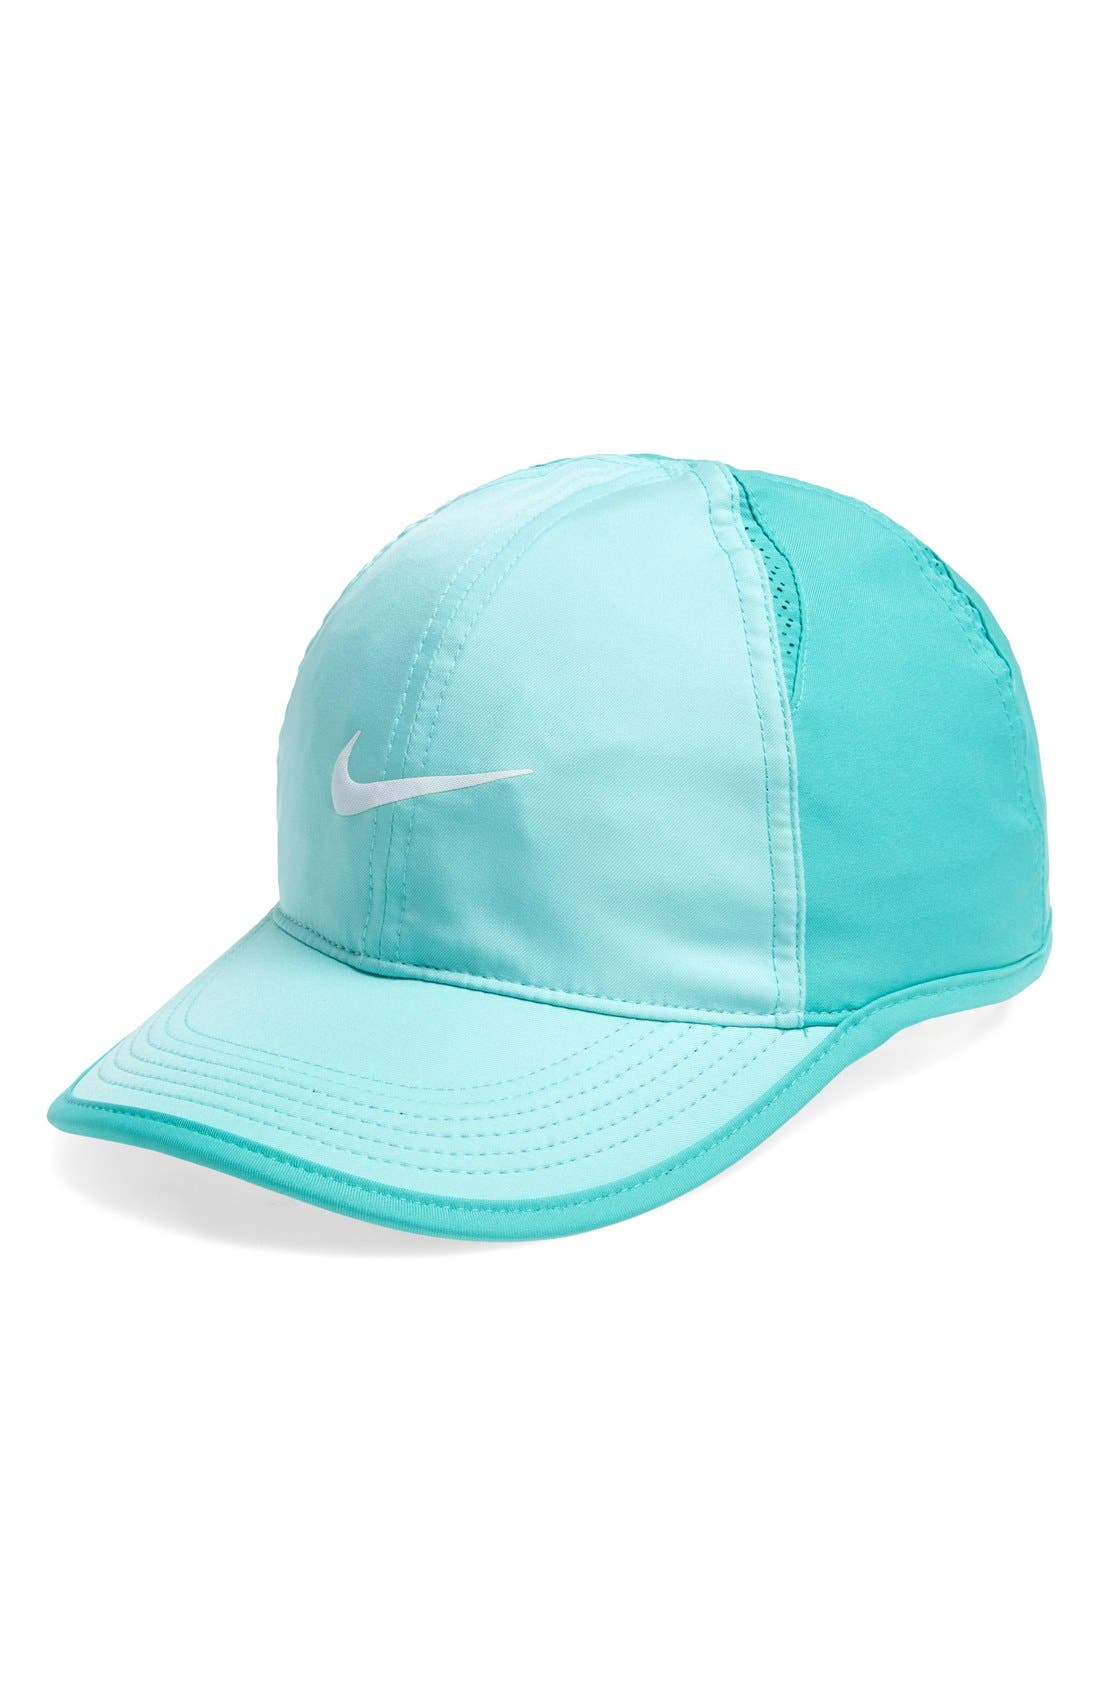 Main Image - Nike 'Feather Light' Dri-FIT Cap